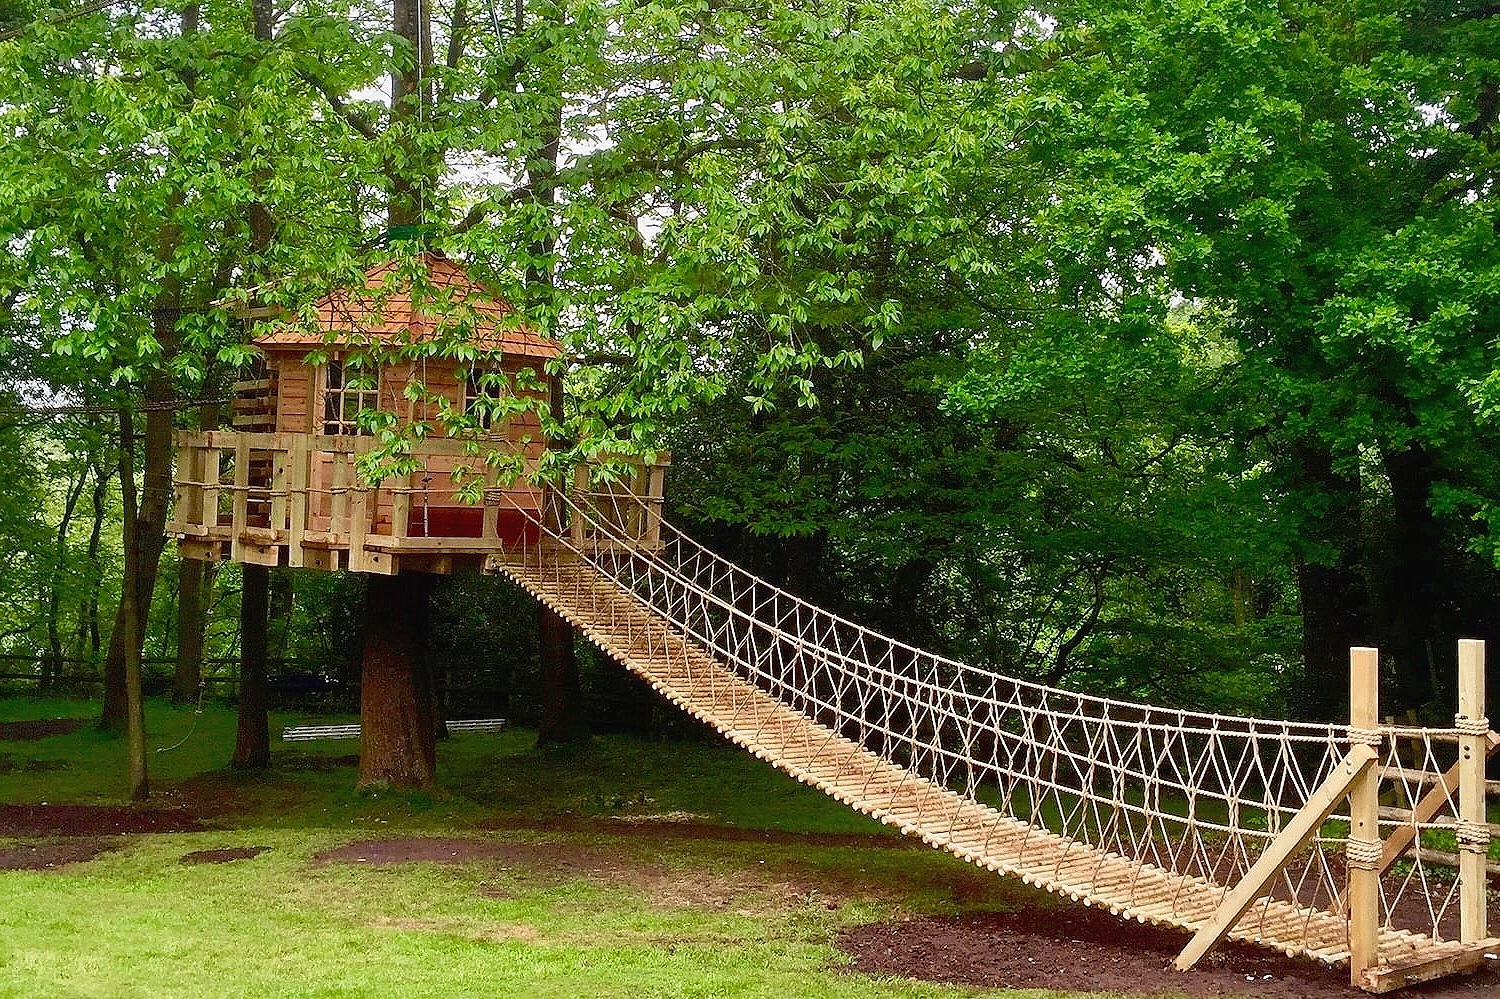 Rope Bridges for treehouses in gardens and woodlands for families, private clients and landscape designers.  More images of this project >